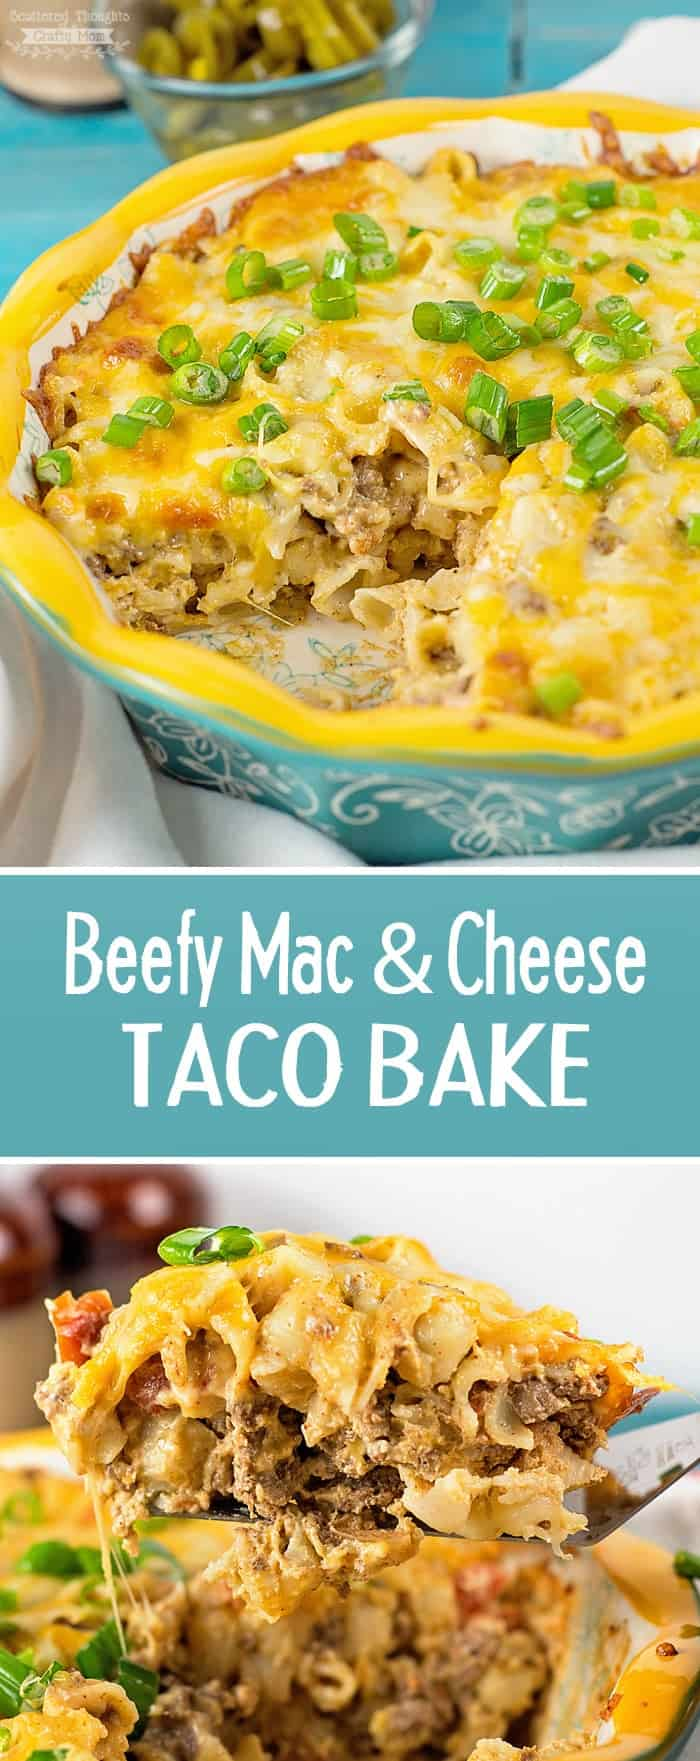 This Beefy Mac and Cheese Taco Bake is stuffed full of cheese and delicious Southwest flavors. The casserole is definitely a family pleaser- guaranteed to fill up even the hungriest belly!